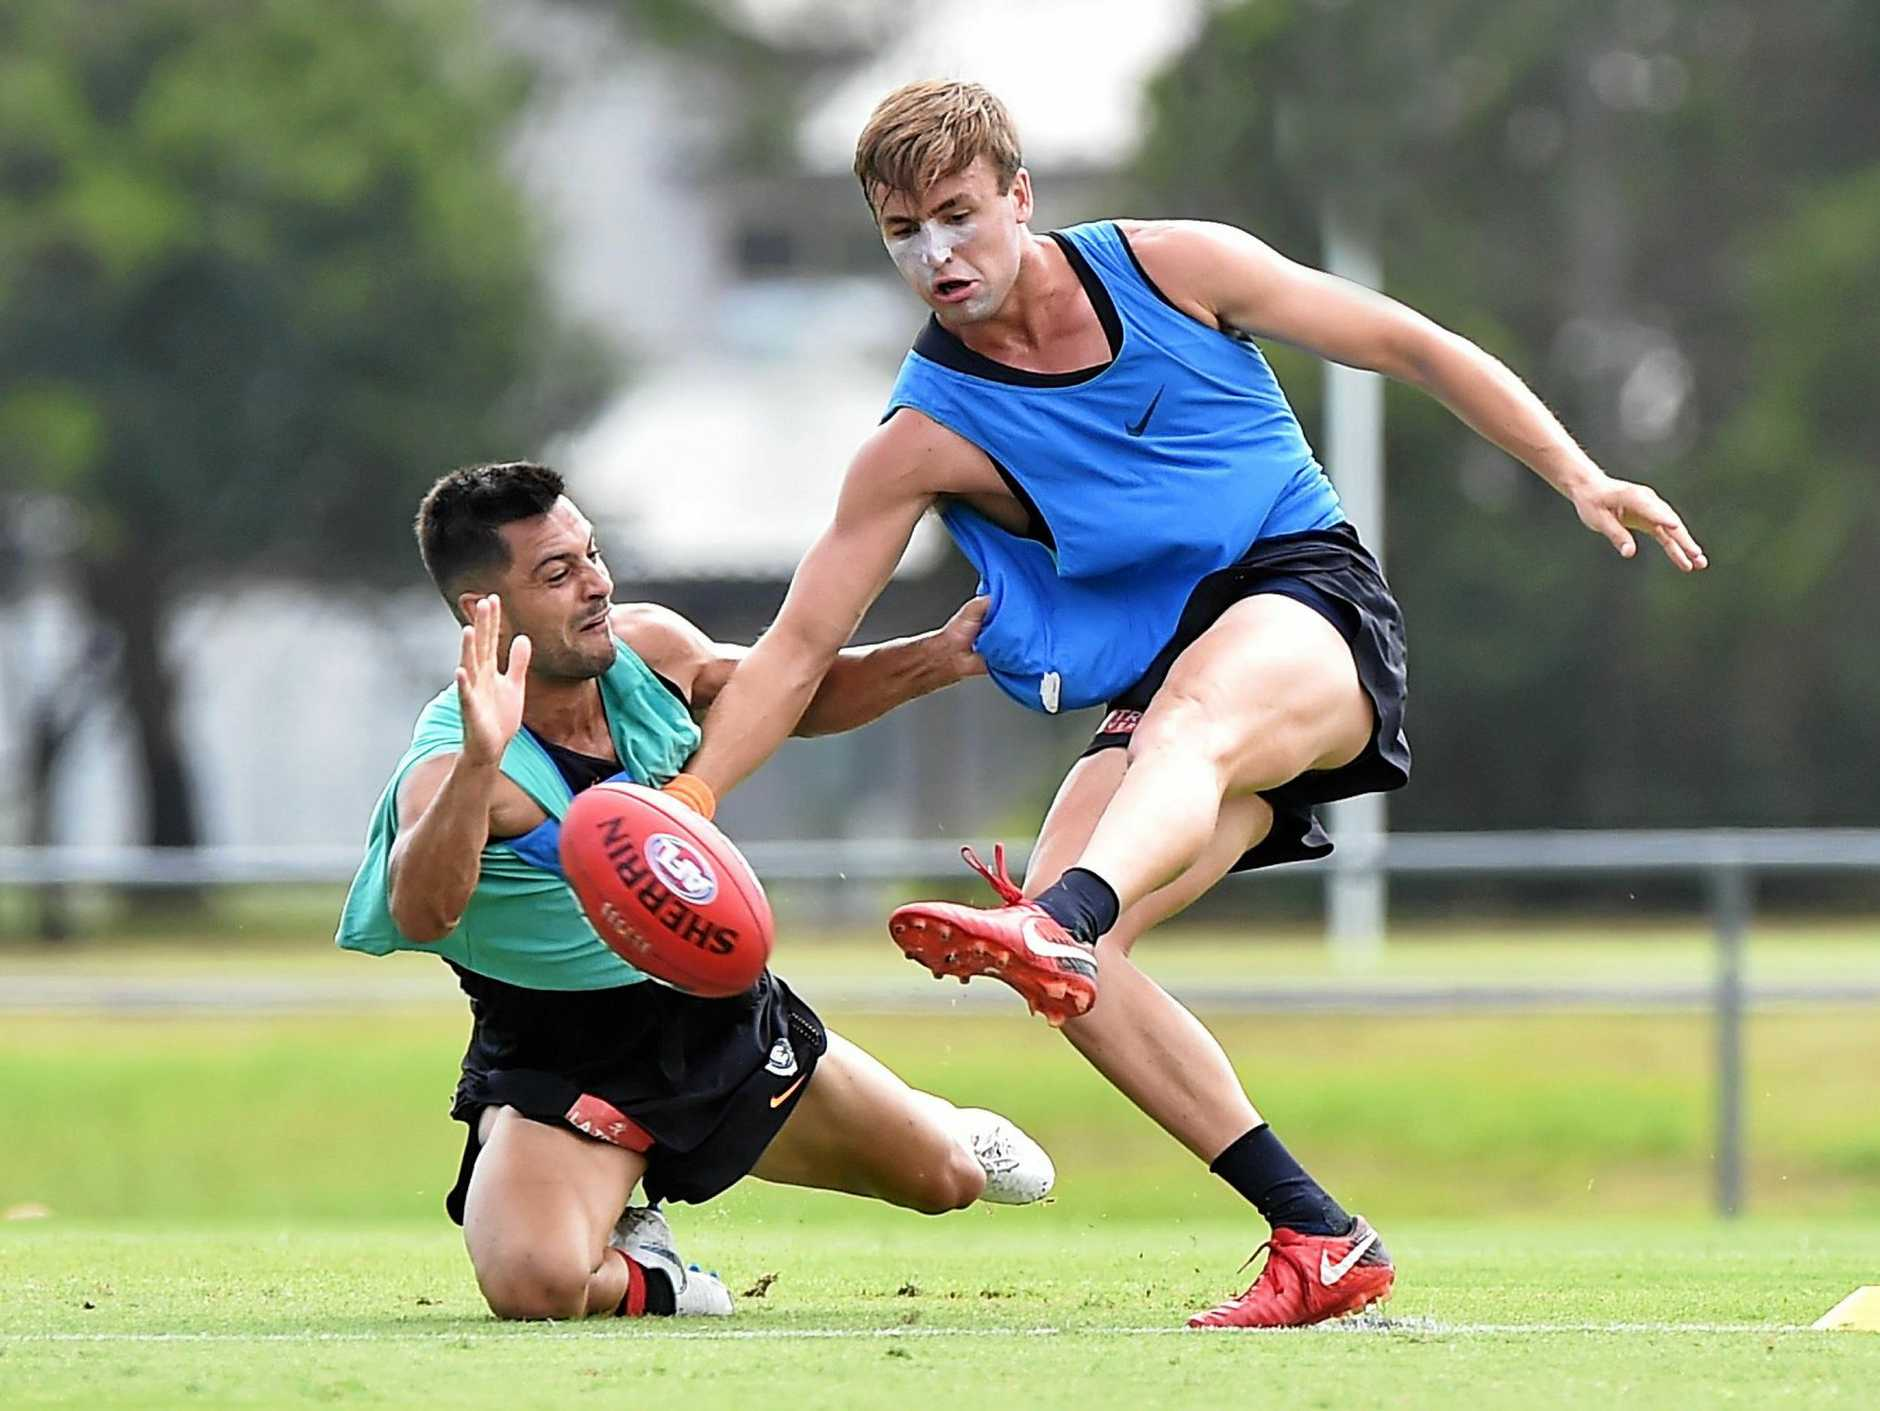 AFL: Carlton Blues pre-season open training session. Young gun Lochie O'Brien (red shoes, blue top).